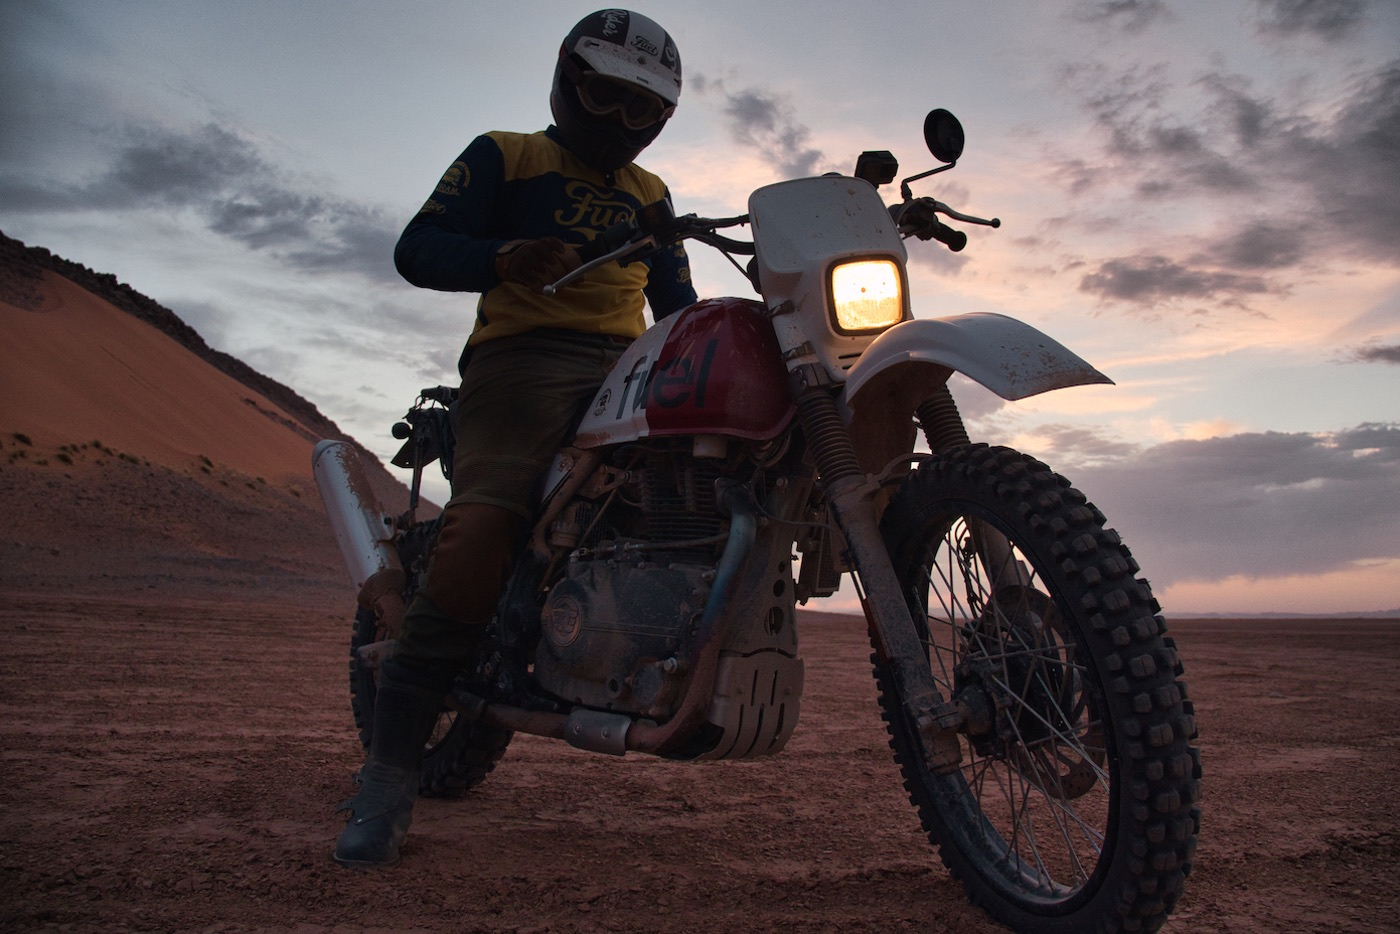 ROYAL ENFIELD HIMALAYAN 'RALLY 400' SCRAM AFRICA - Sunset